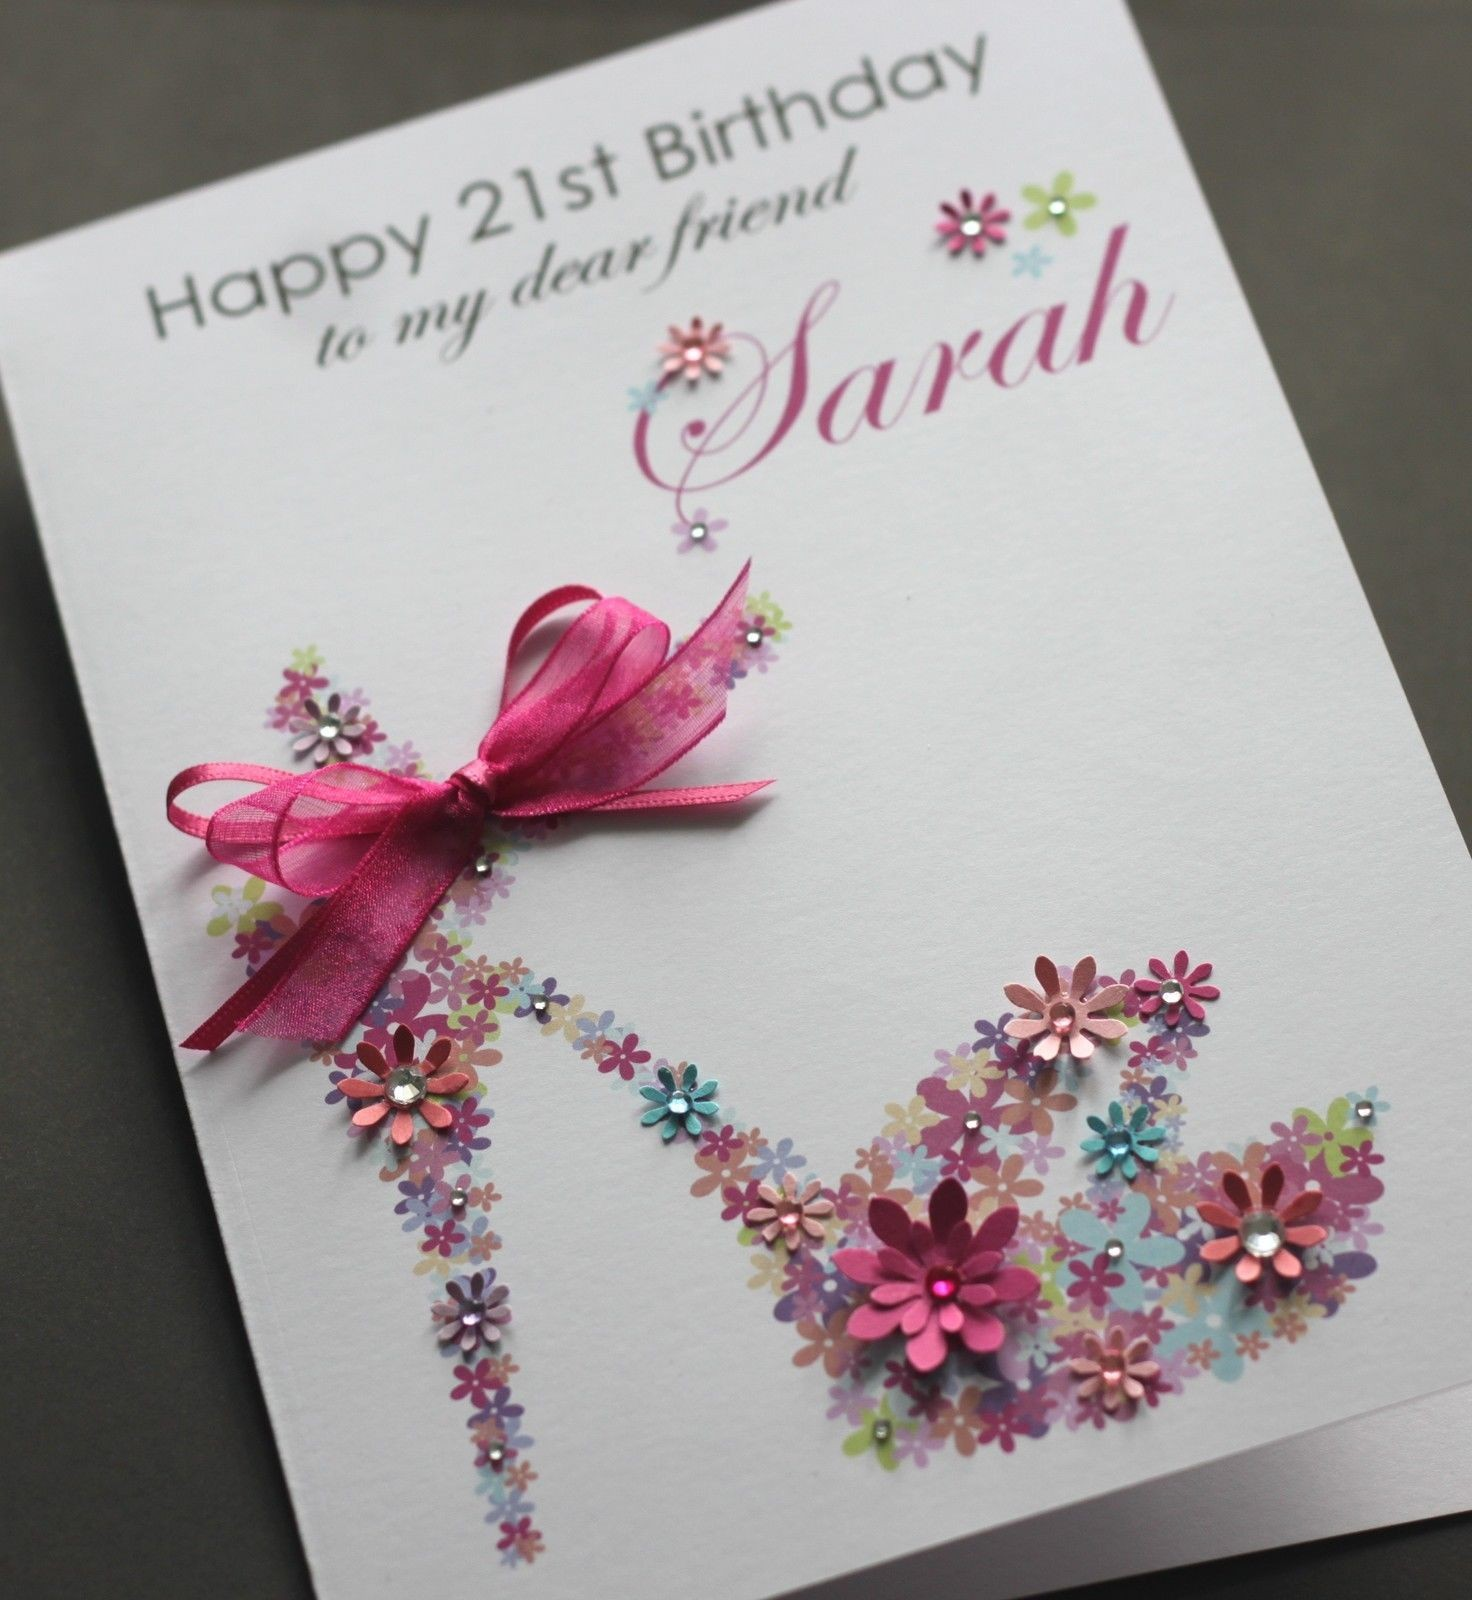 hand made birthday greeting cards ; birthday-greeting-card-ideas-for-husband-elegant-acaas41-handmade-birthday-card-ideas-with-and-steps-of-birthday-greeting-card-ideas-for-husband